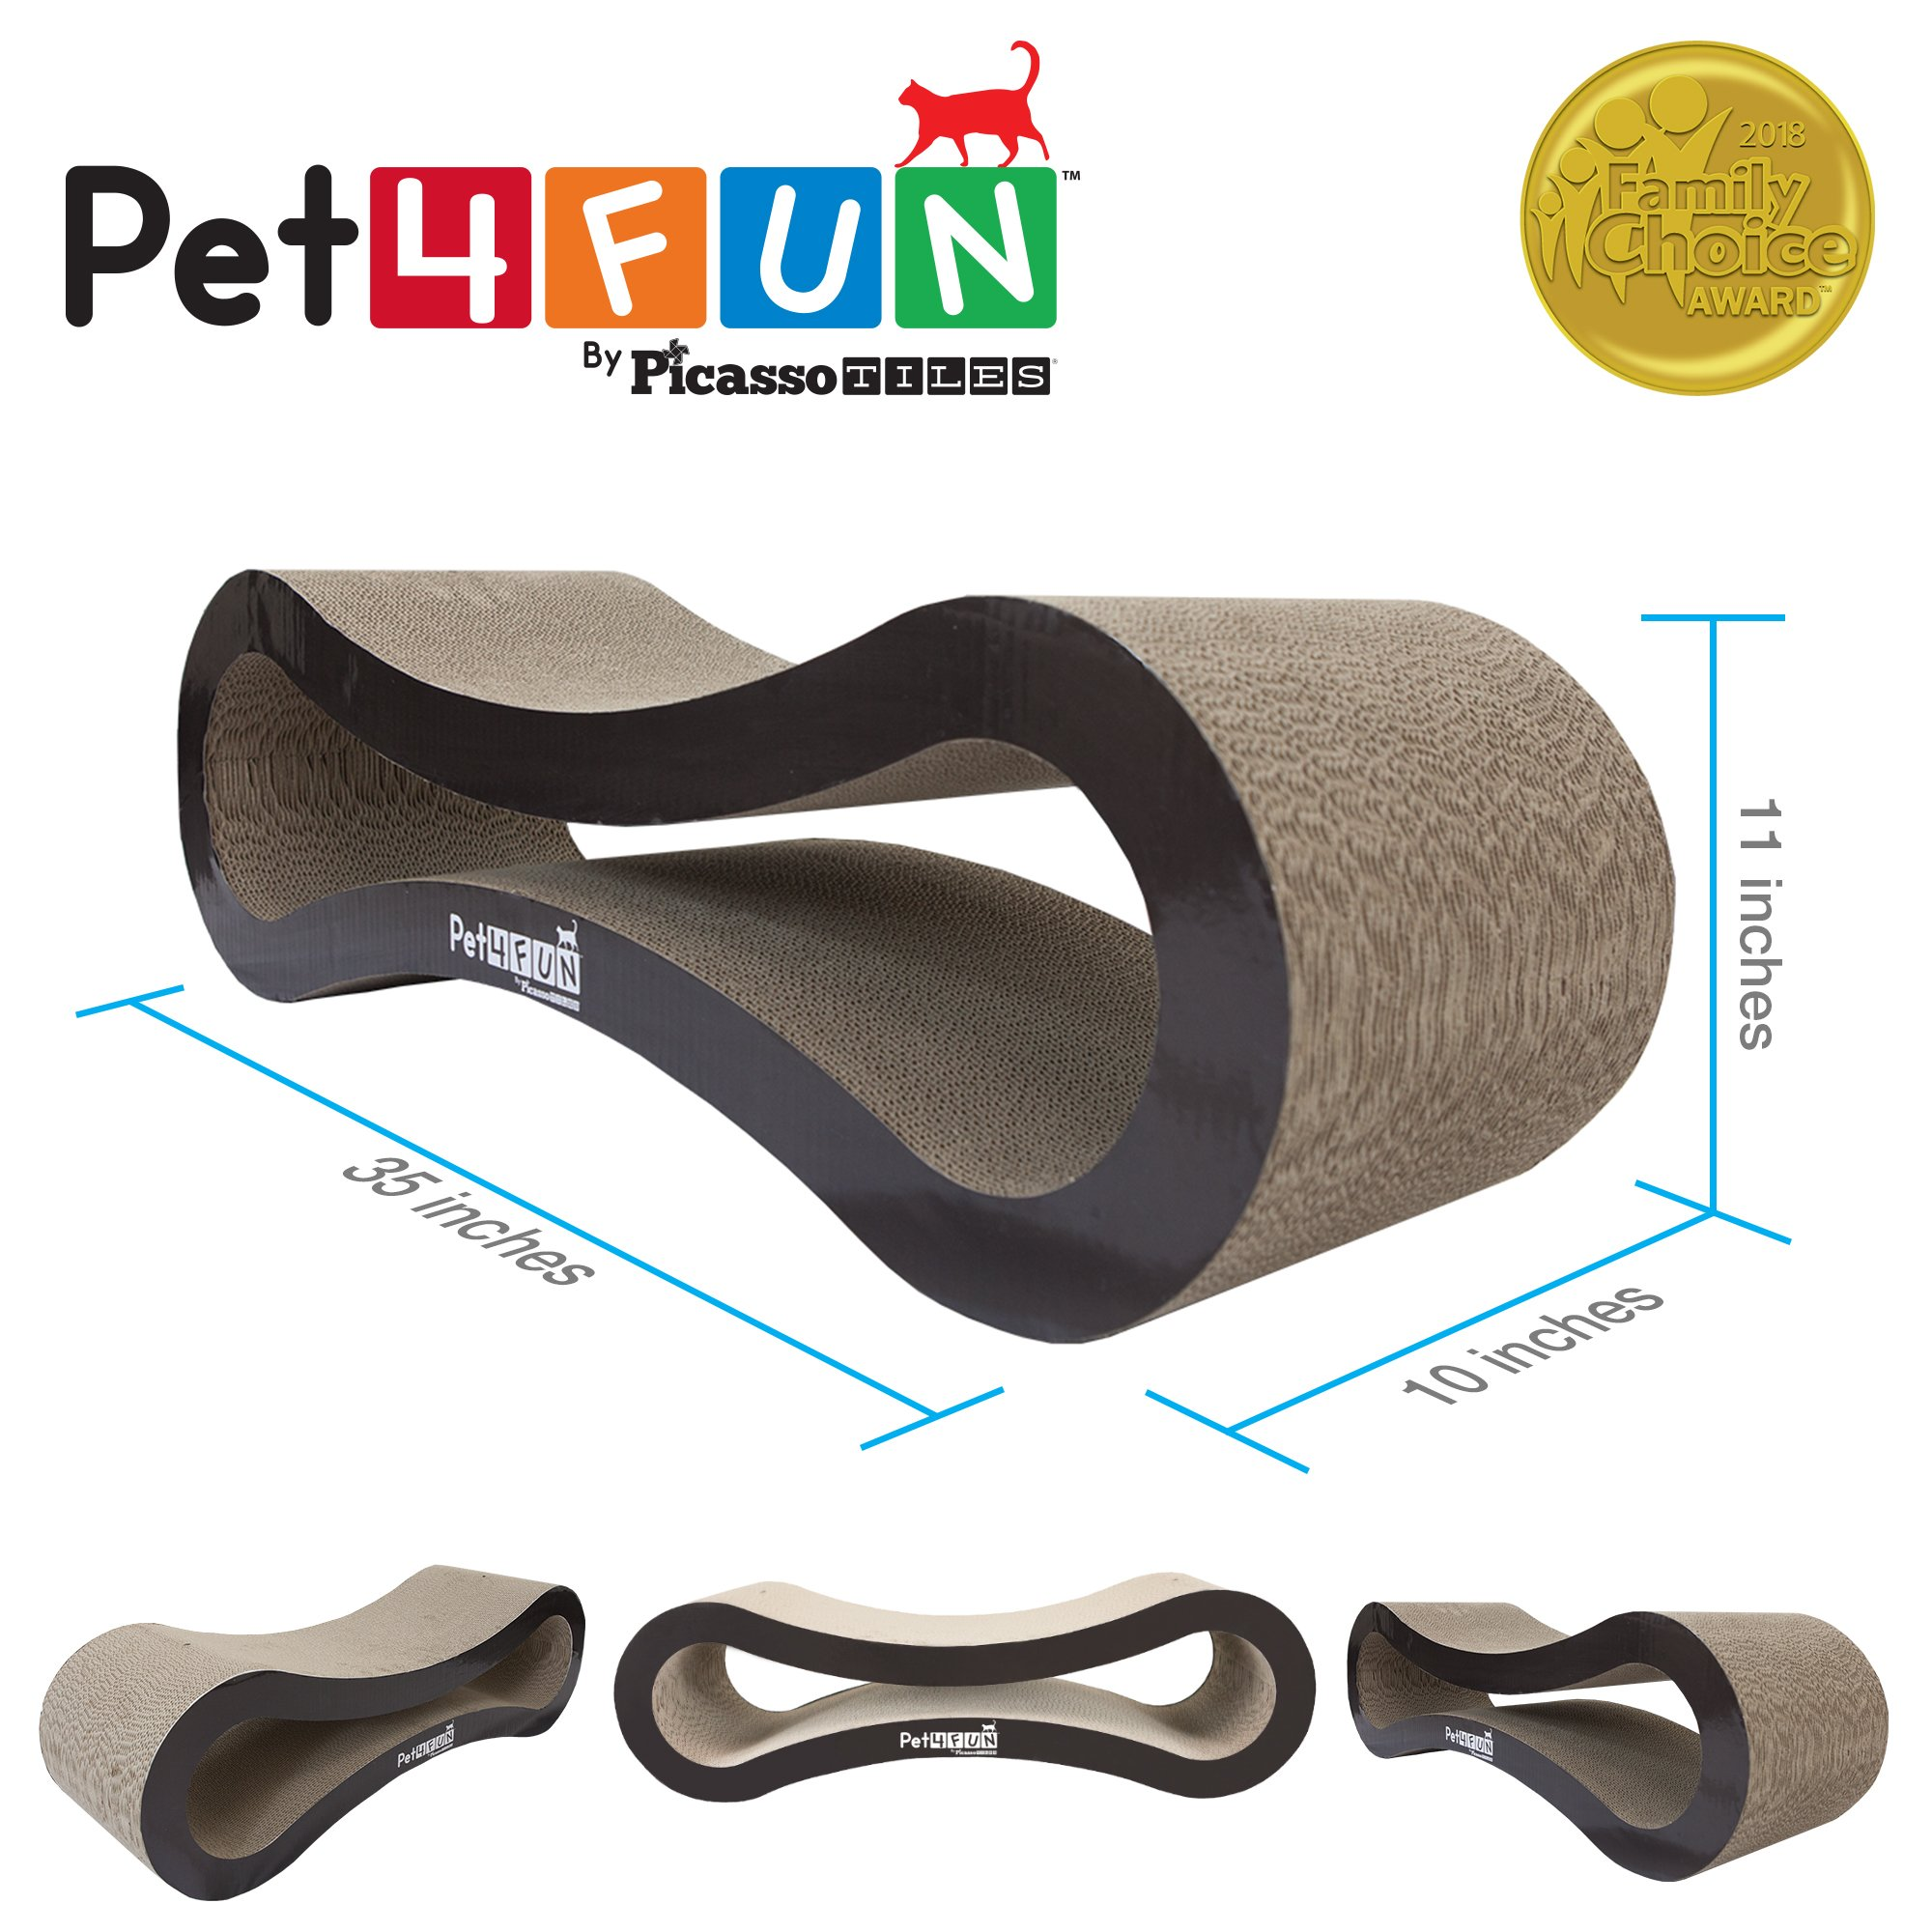 Pet4Fun® PF360 4 in1 Reversible Durable Stylish Cat Scratcher Lounge w/ large space and special teaser holder for scratching, playing, resting, and napping. Teaser, Comb, & Catnip Included by Picasso Tiles by PicassoTiles (Image #4)